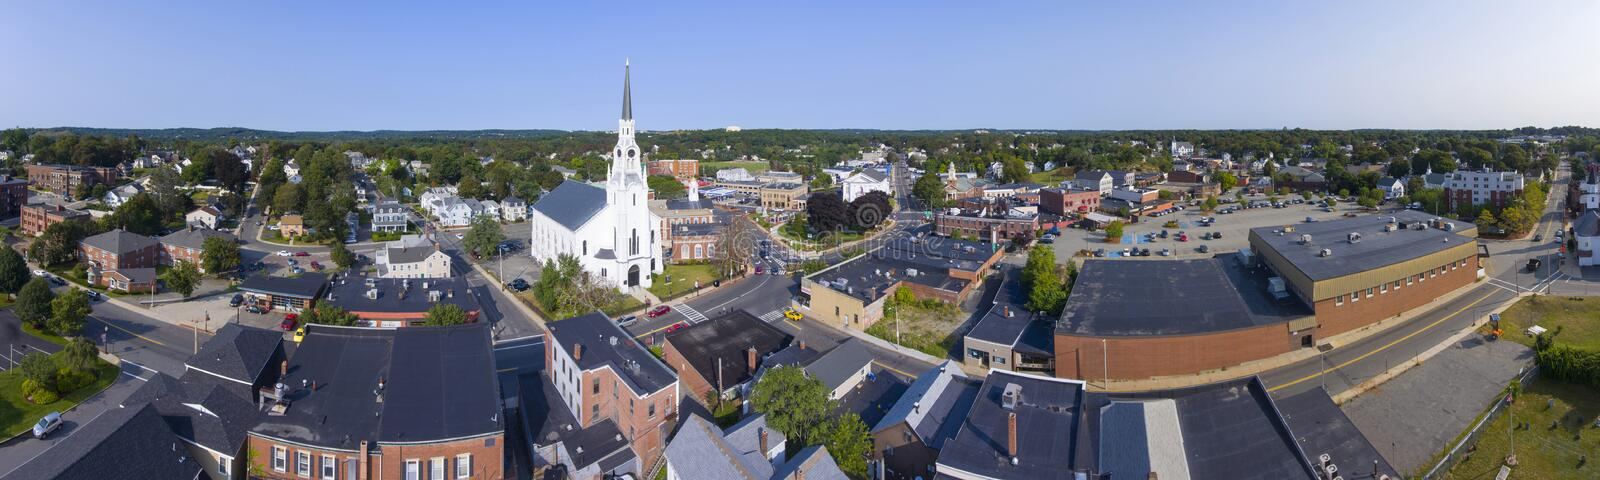 Woburn downtown aerial view, Massachusetts, USA. Woburn First Congregational Church panorama aerial view in downtown Woburn, Massachusetts, USA royalty free stock photography